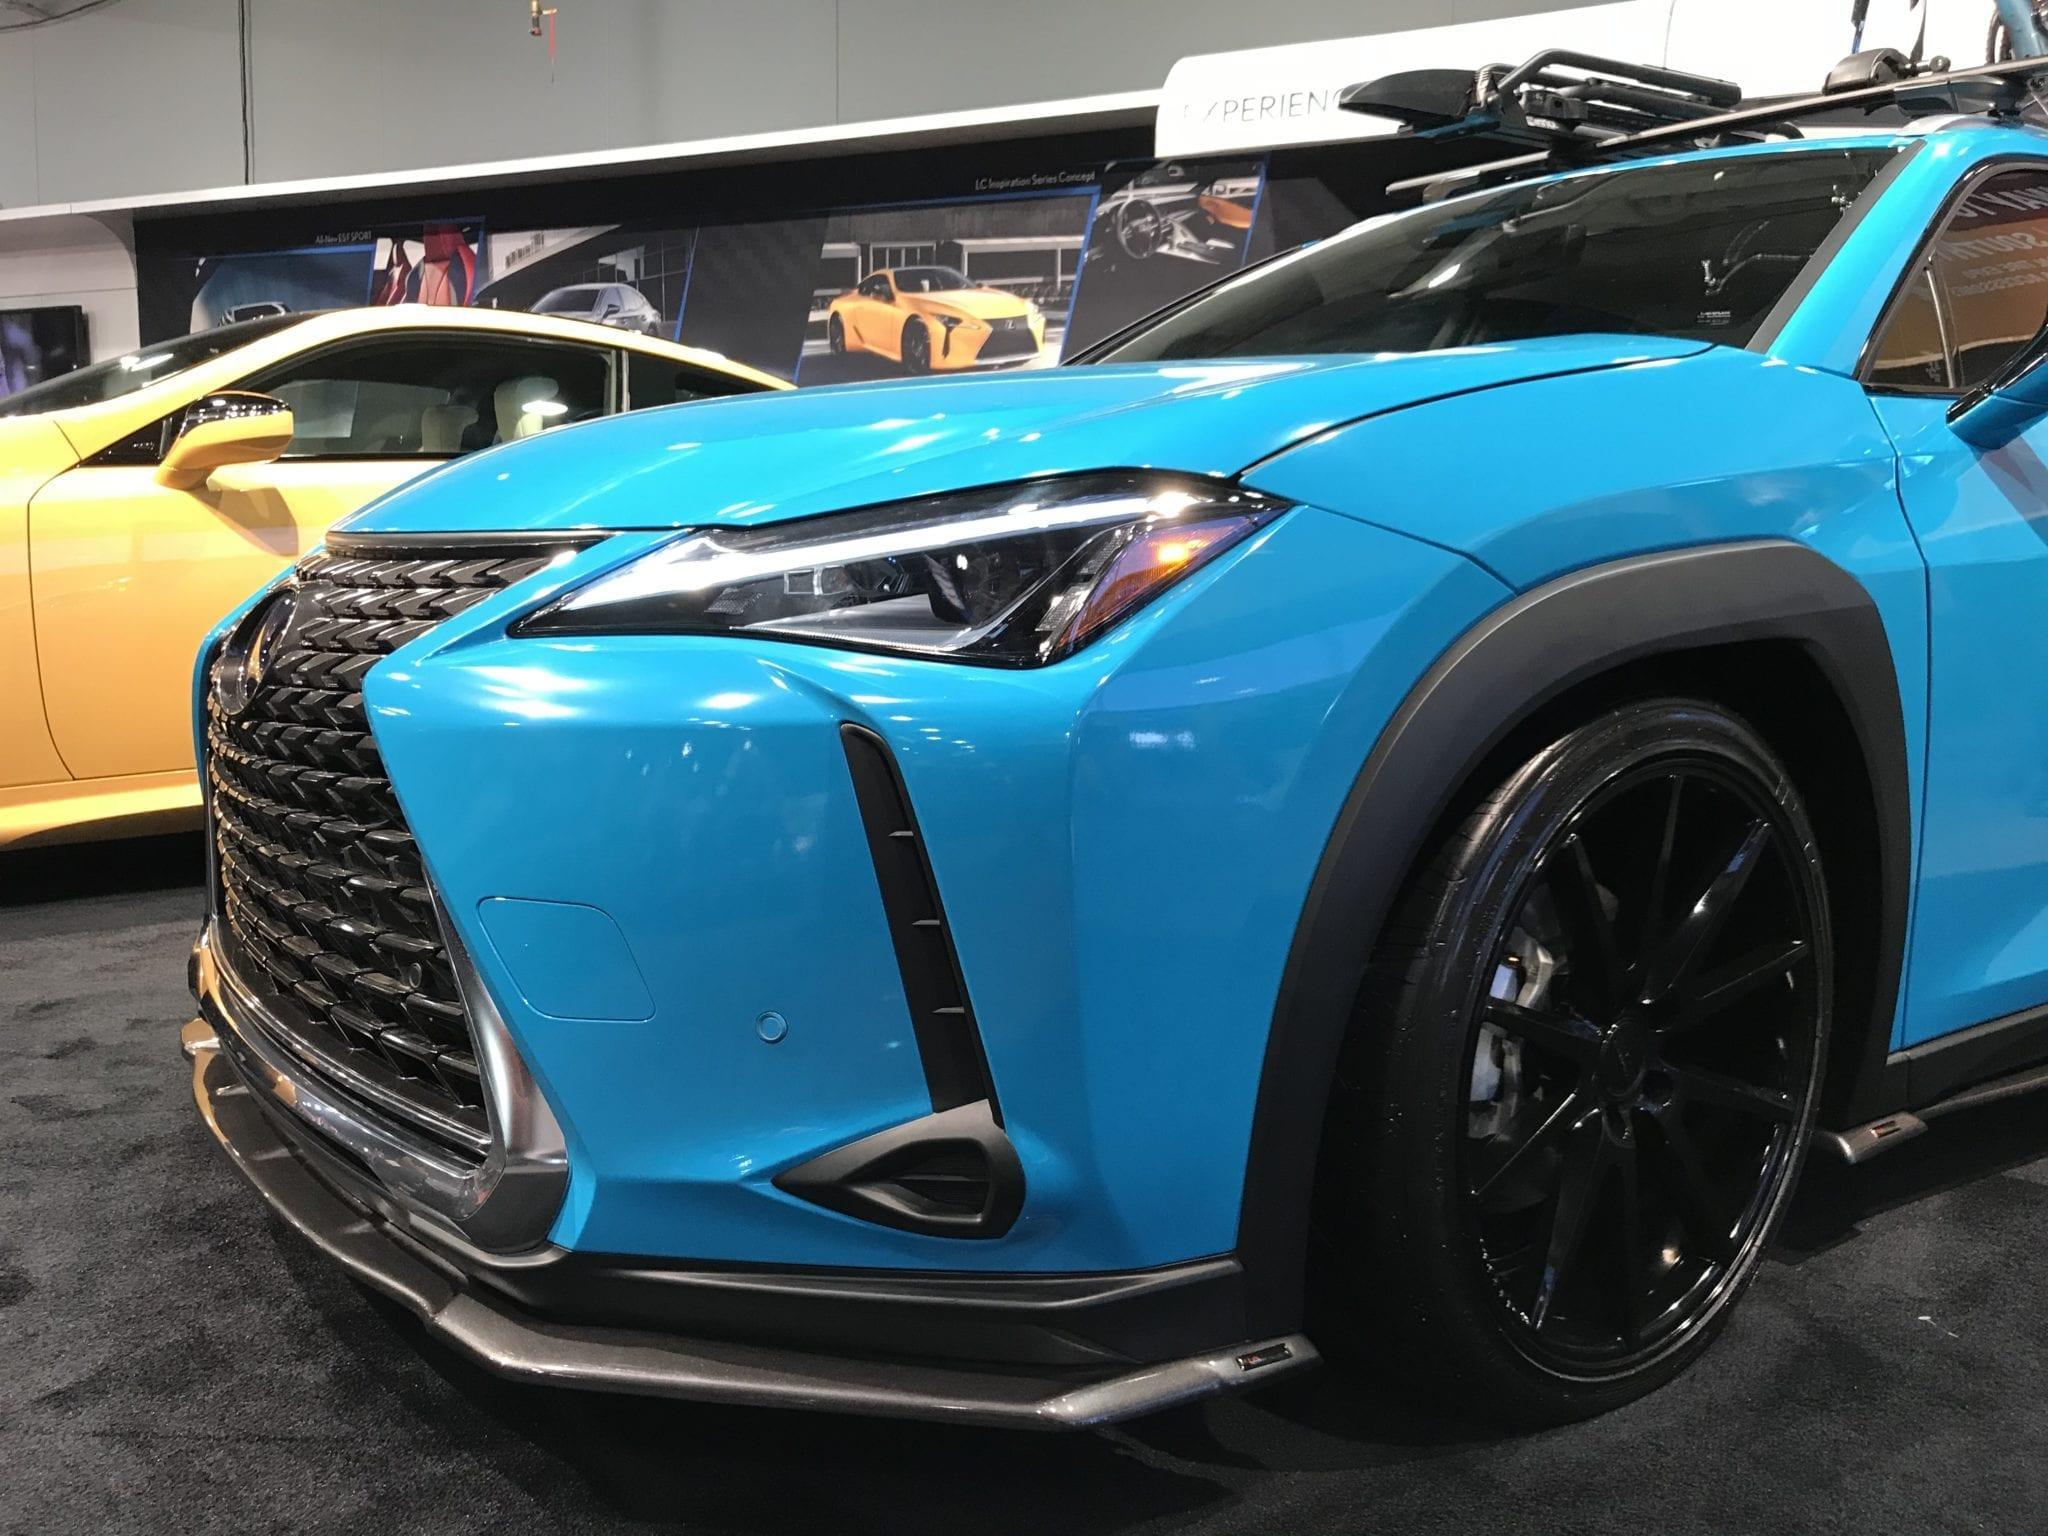 NIA Auto Design | Quality Engineered Body Kits | Splitters, Lips, Spats, Side Skirts, DIffusers, Eyelids, Spoilers